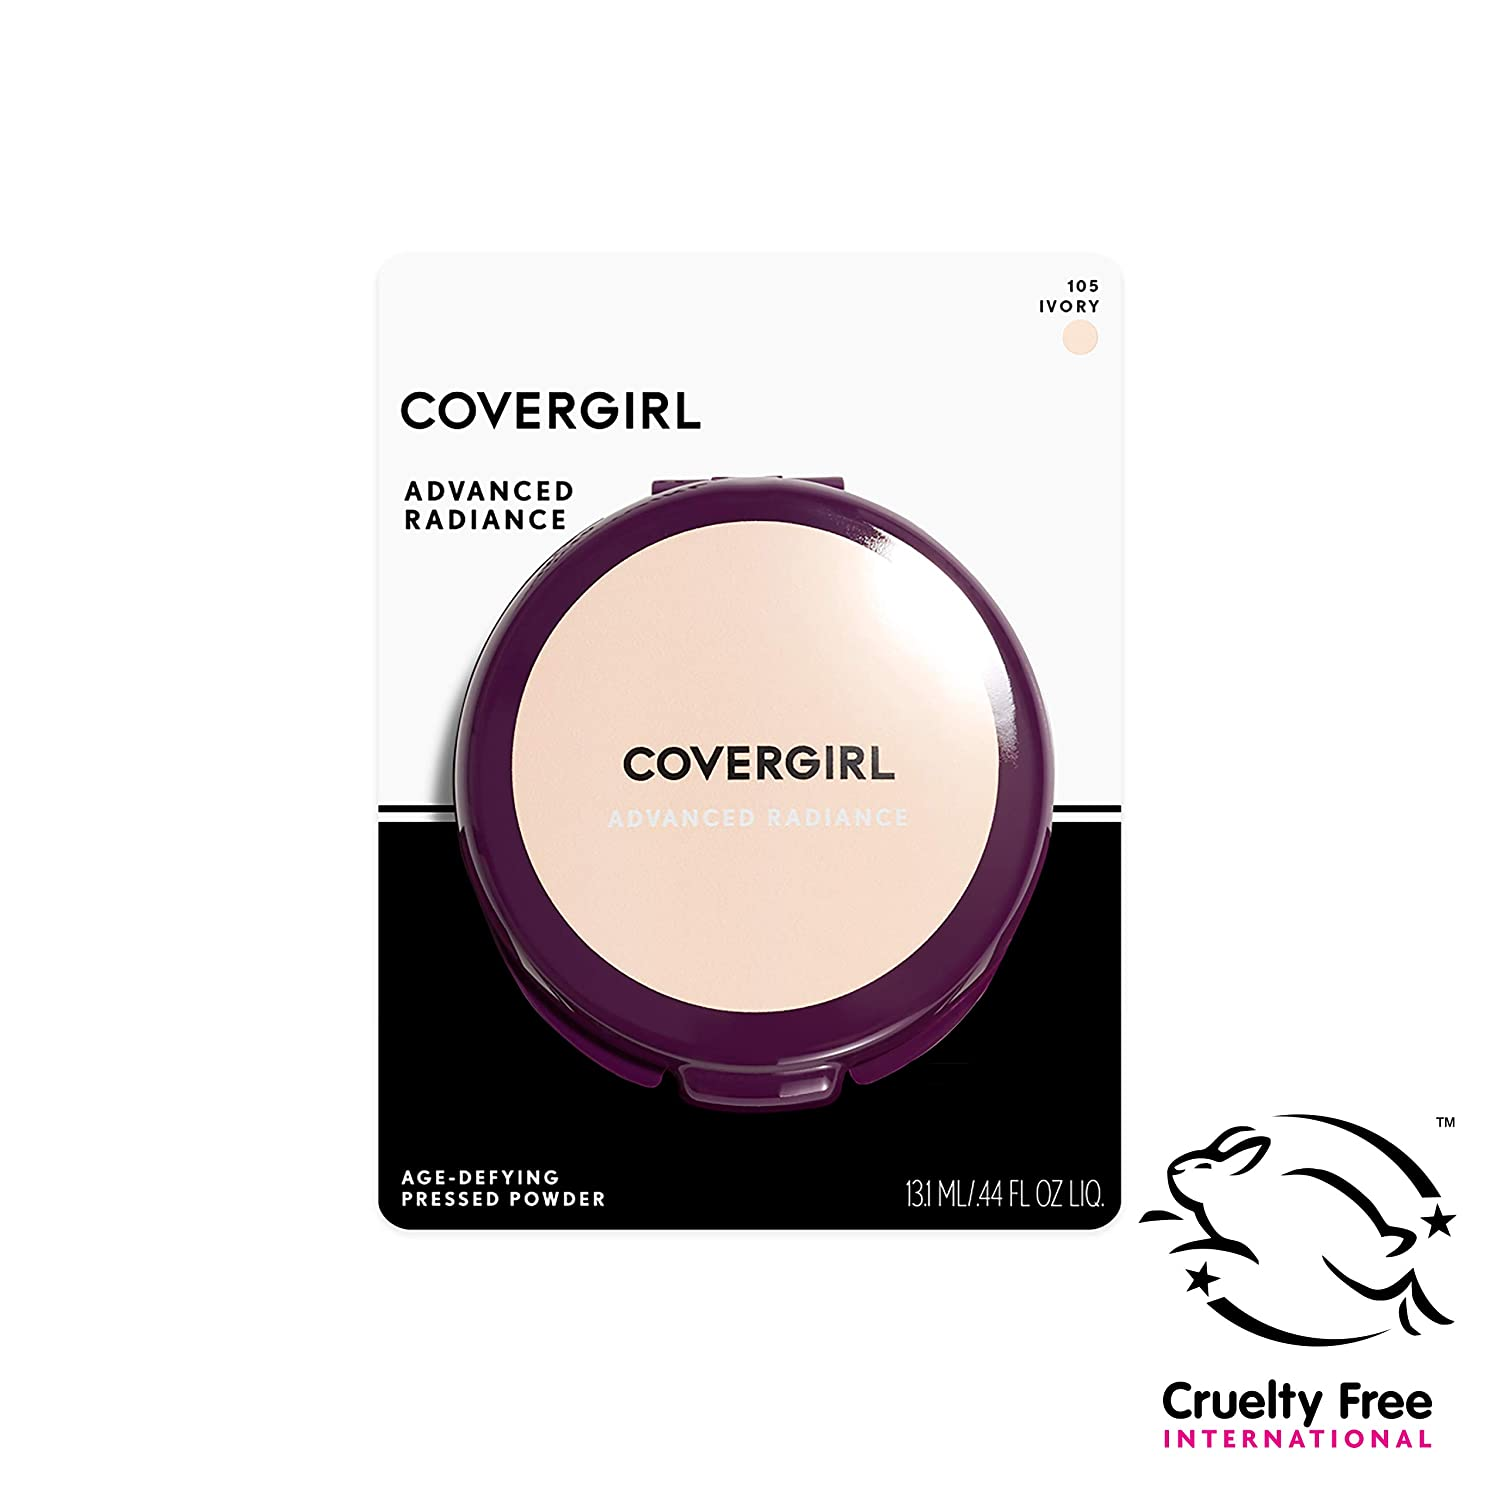 COVERGIRL Advanced Radiance Age-Defying Pressed Powder, 1 Container (.39 oz) Ivory Tone, Creamy Facial Powder, Sensitive Skin Safe (packaging may vary)